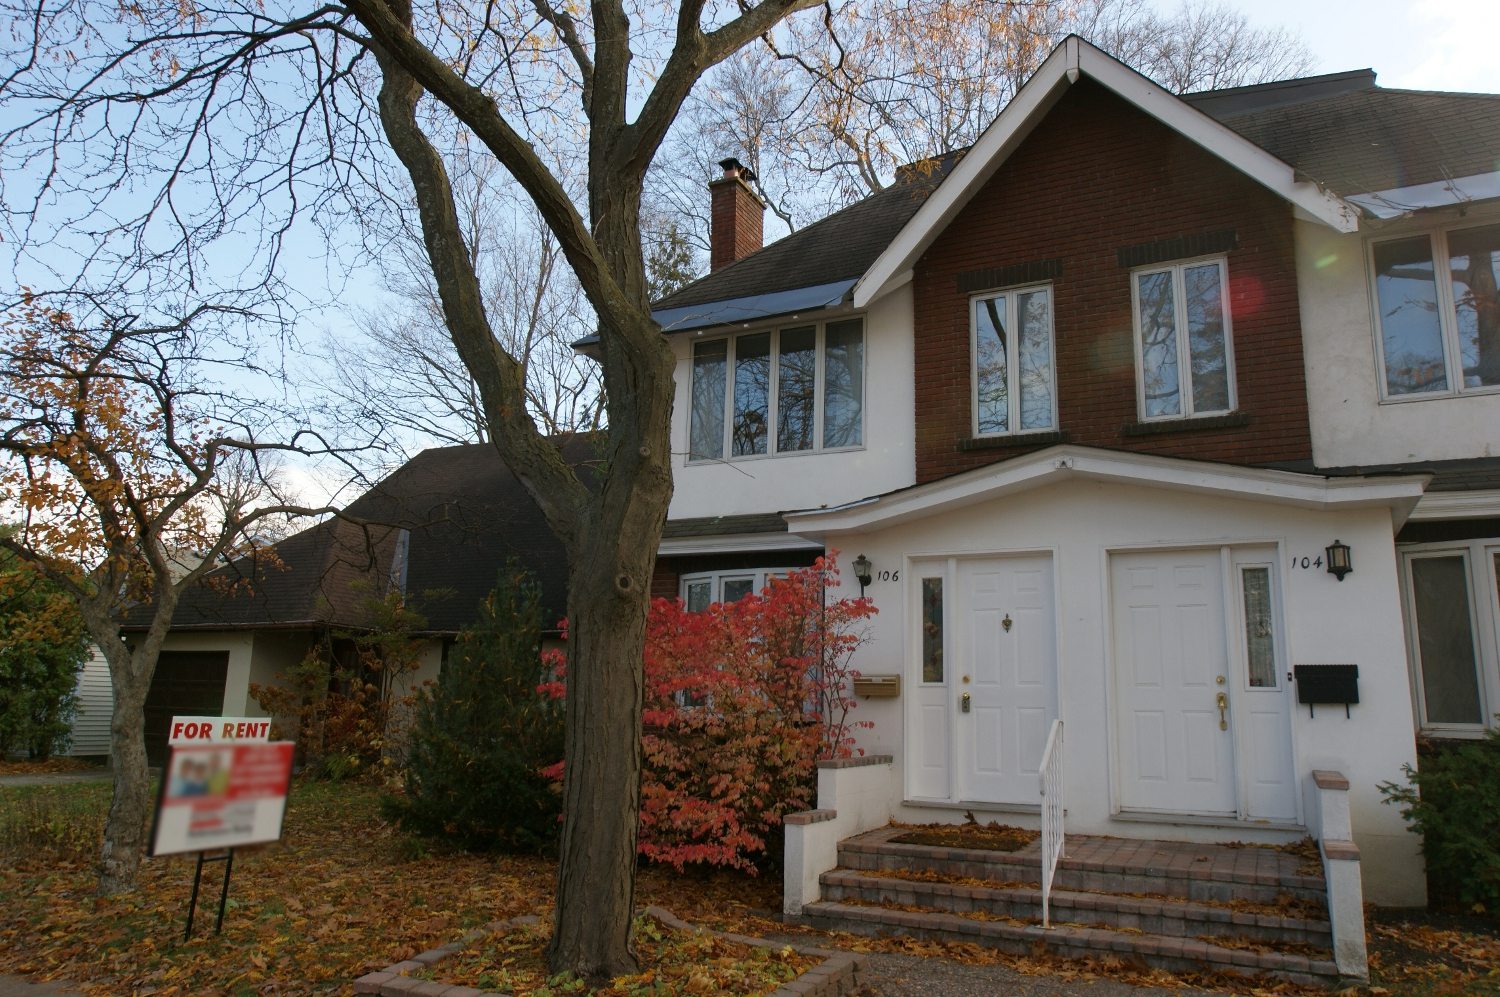 106 Maple Lane – Rented November 2016